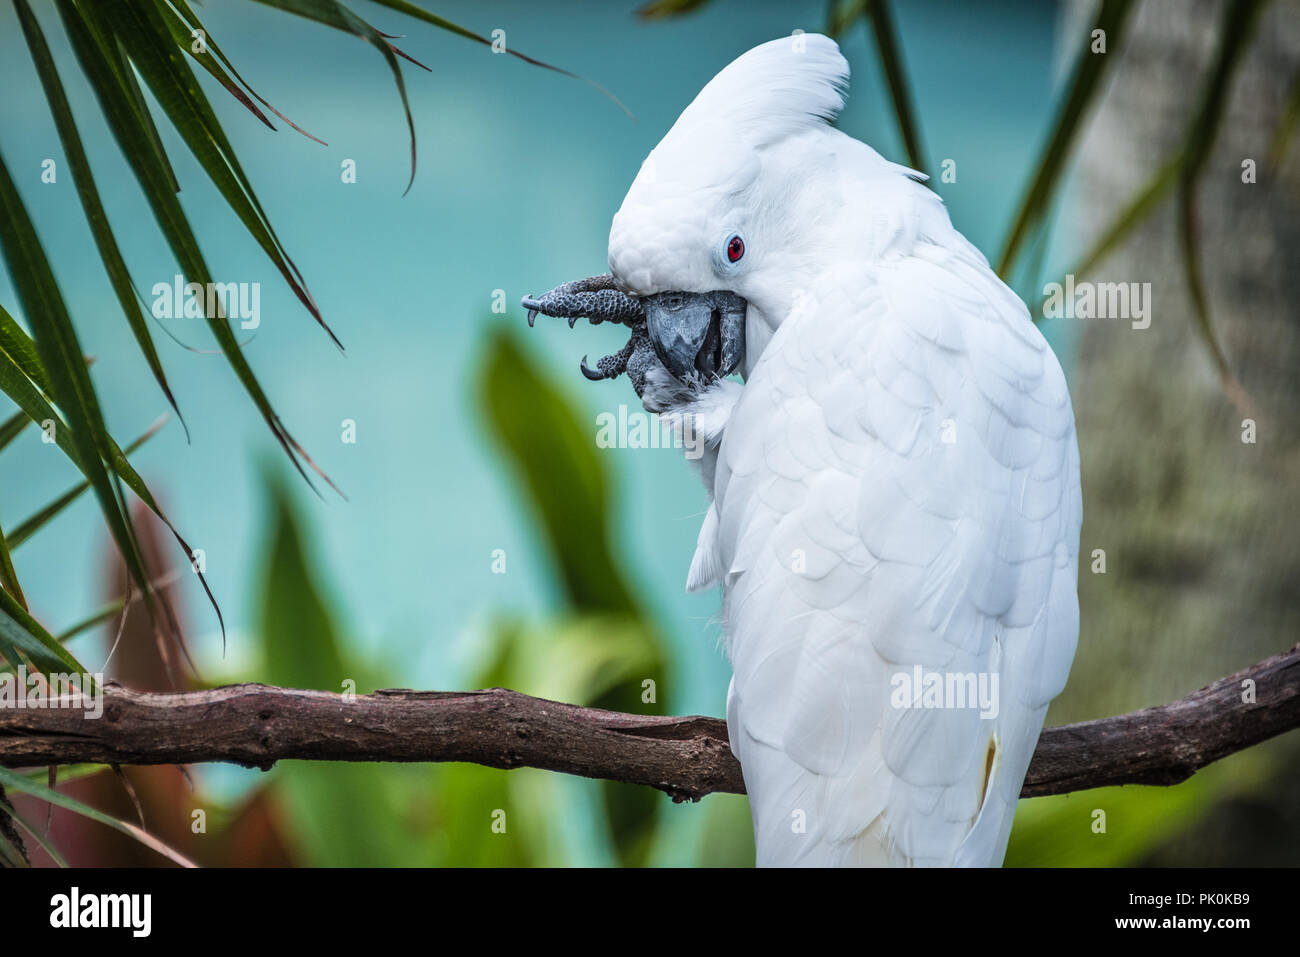 White umbrella cockatoo at St. Augustine Alligator Farm Zoological Park in St. Augustine, Florida. (USA) - Stock Image